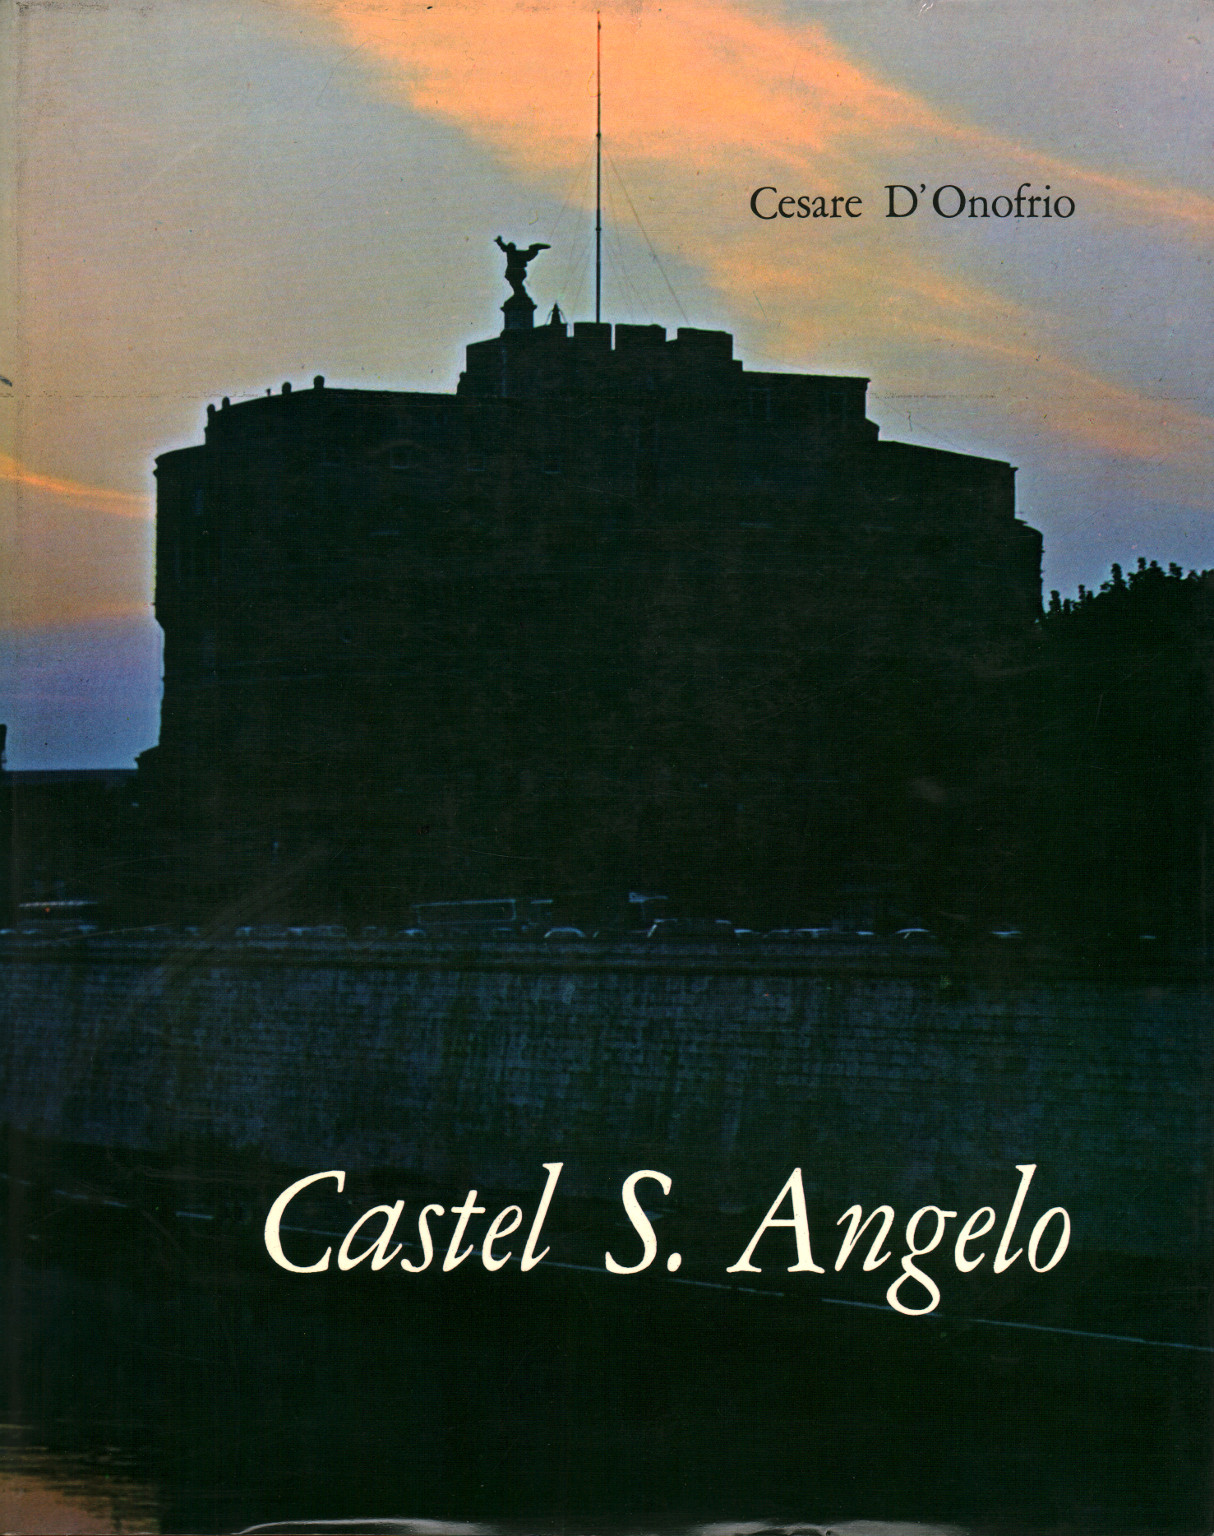 Castel S. Angelo, s.a.